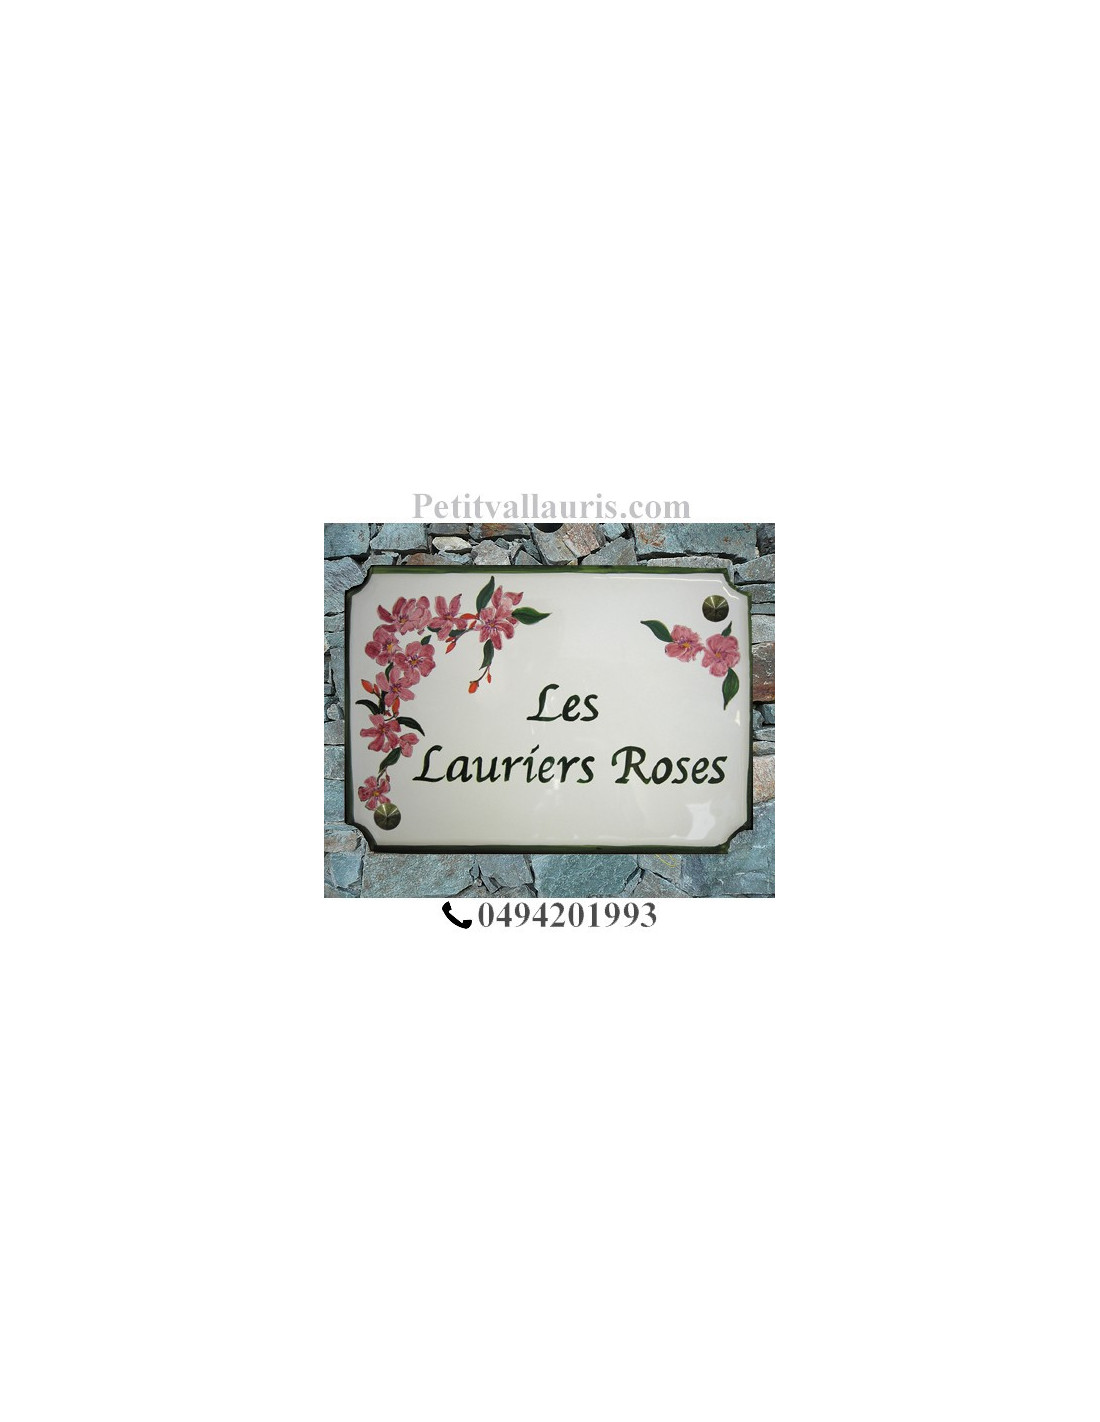 grande plaque de maison en faience maill e mod le angles incurv s motif artisanal laurier rose. Black Bedroom Furniture Sets. Home Design Ideas